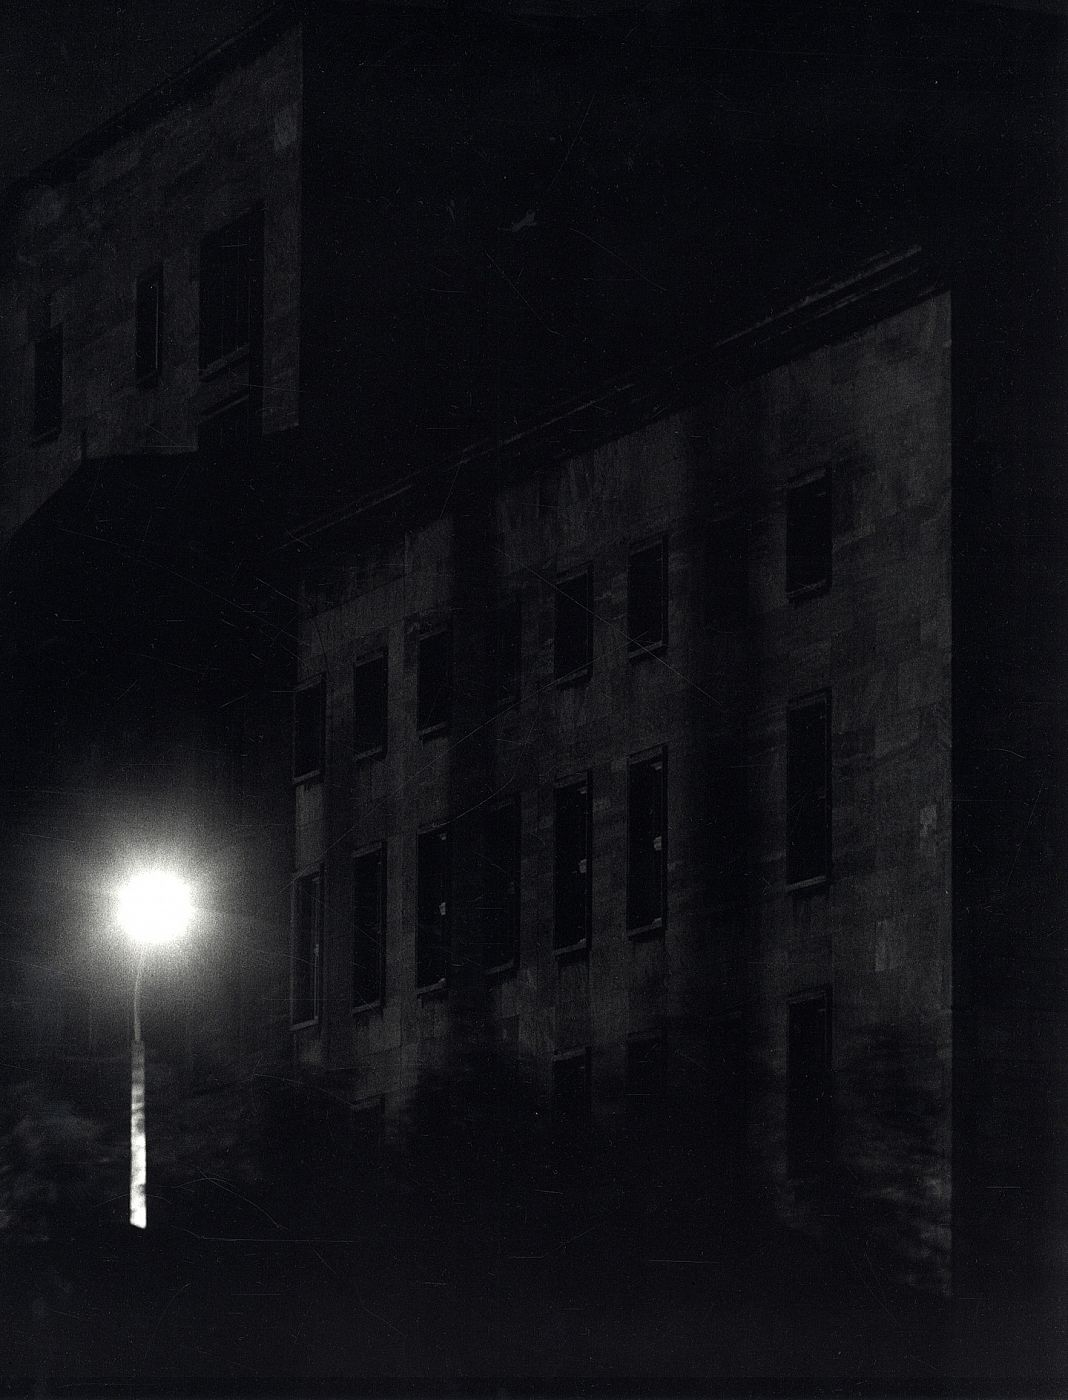 Stadt des Schwarz: Eighteen Photographs by John Gossage, Limited Edition (with Tipped-In Gelatin Silver Print) [SIGNED]